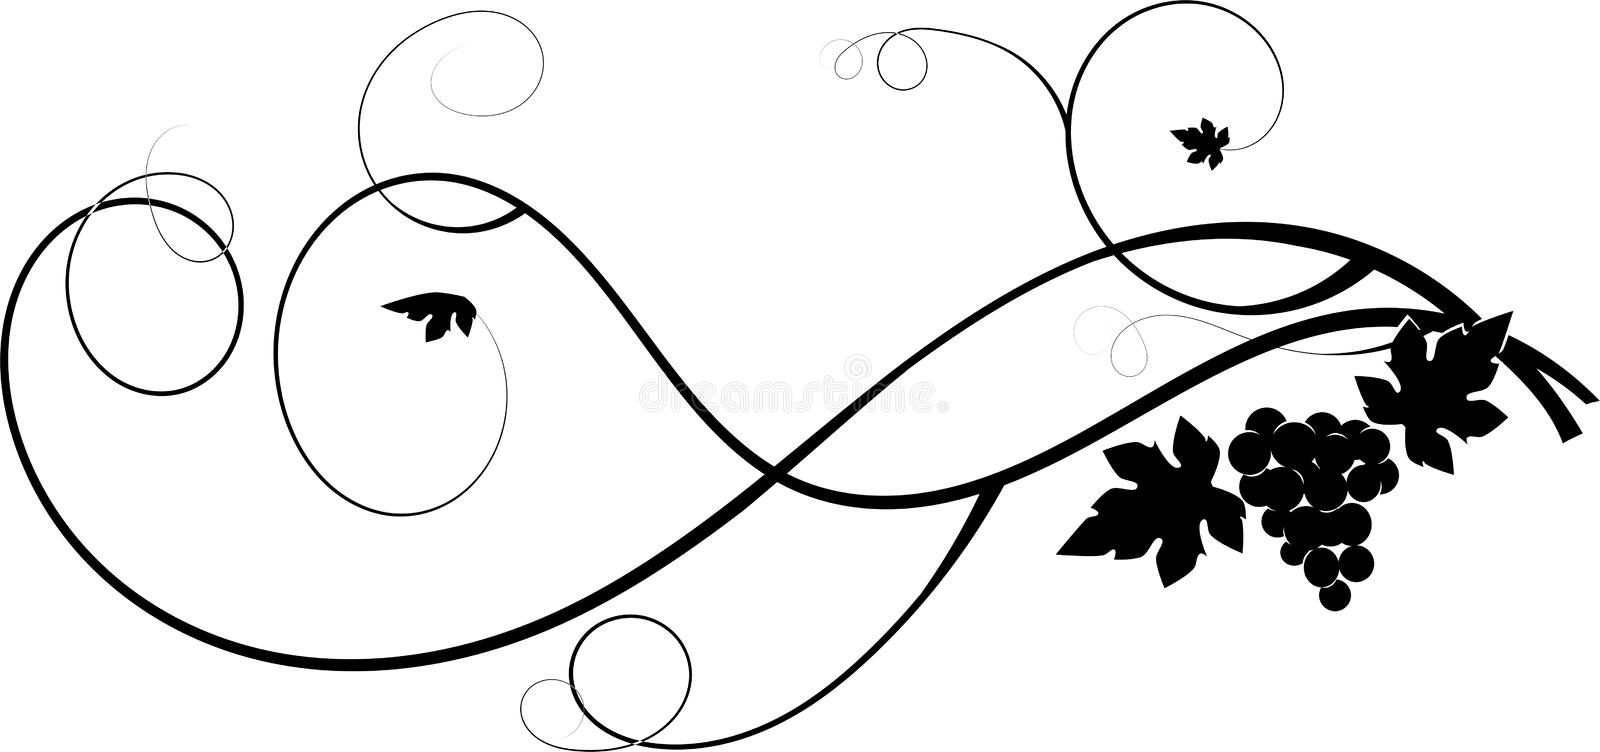 Grapes. Bunch of black grapes with leaves royalty free illustration